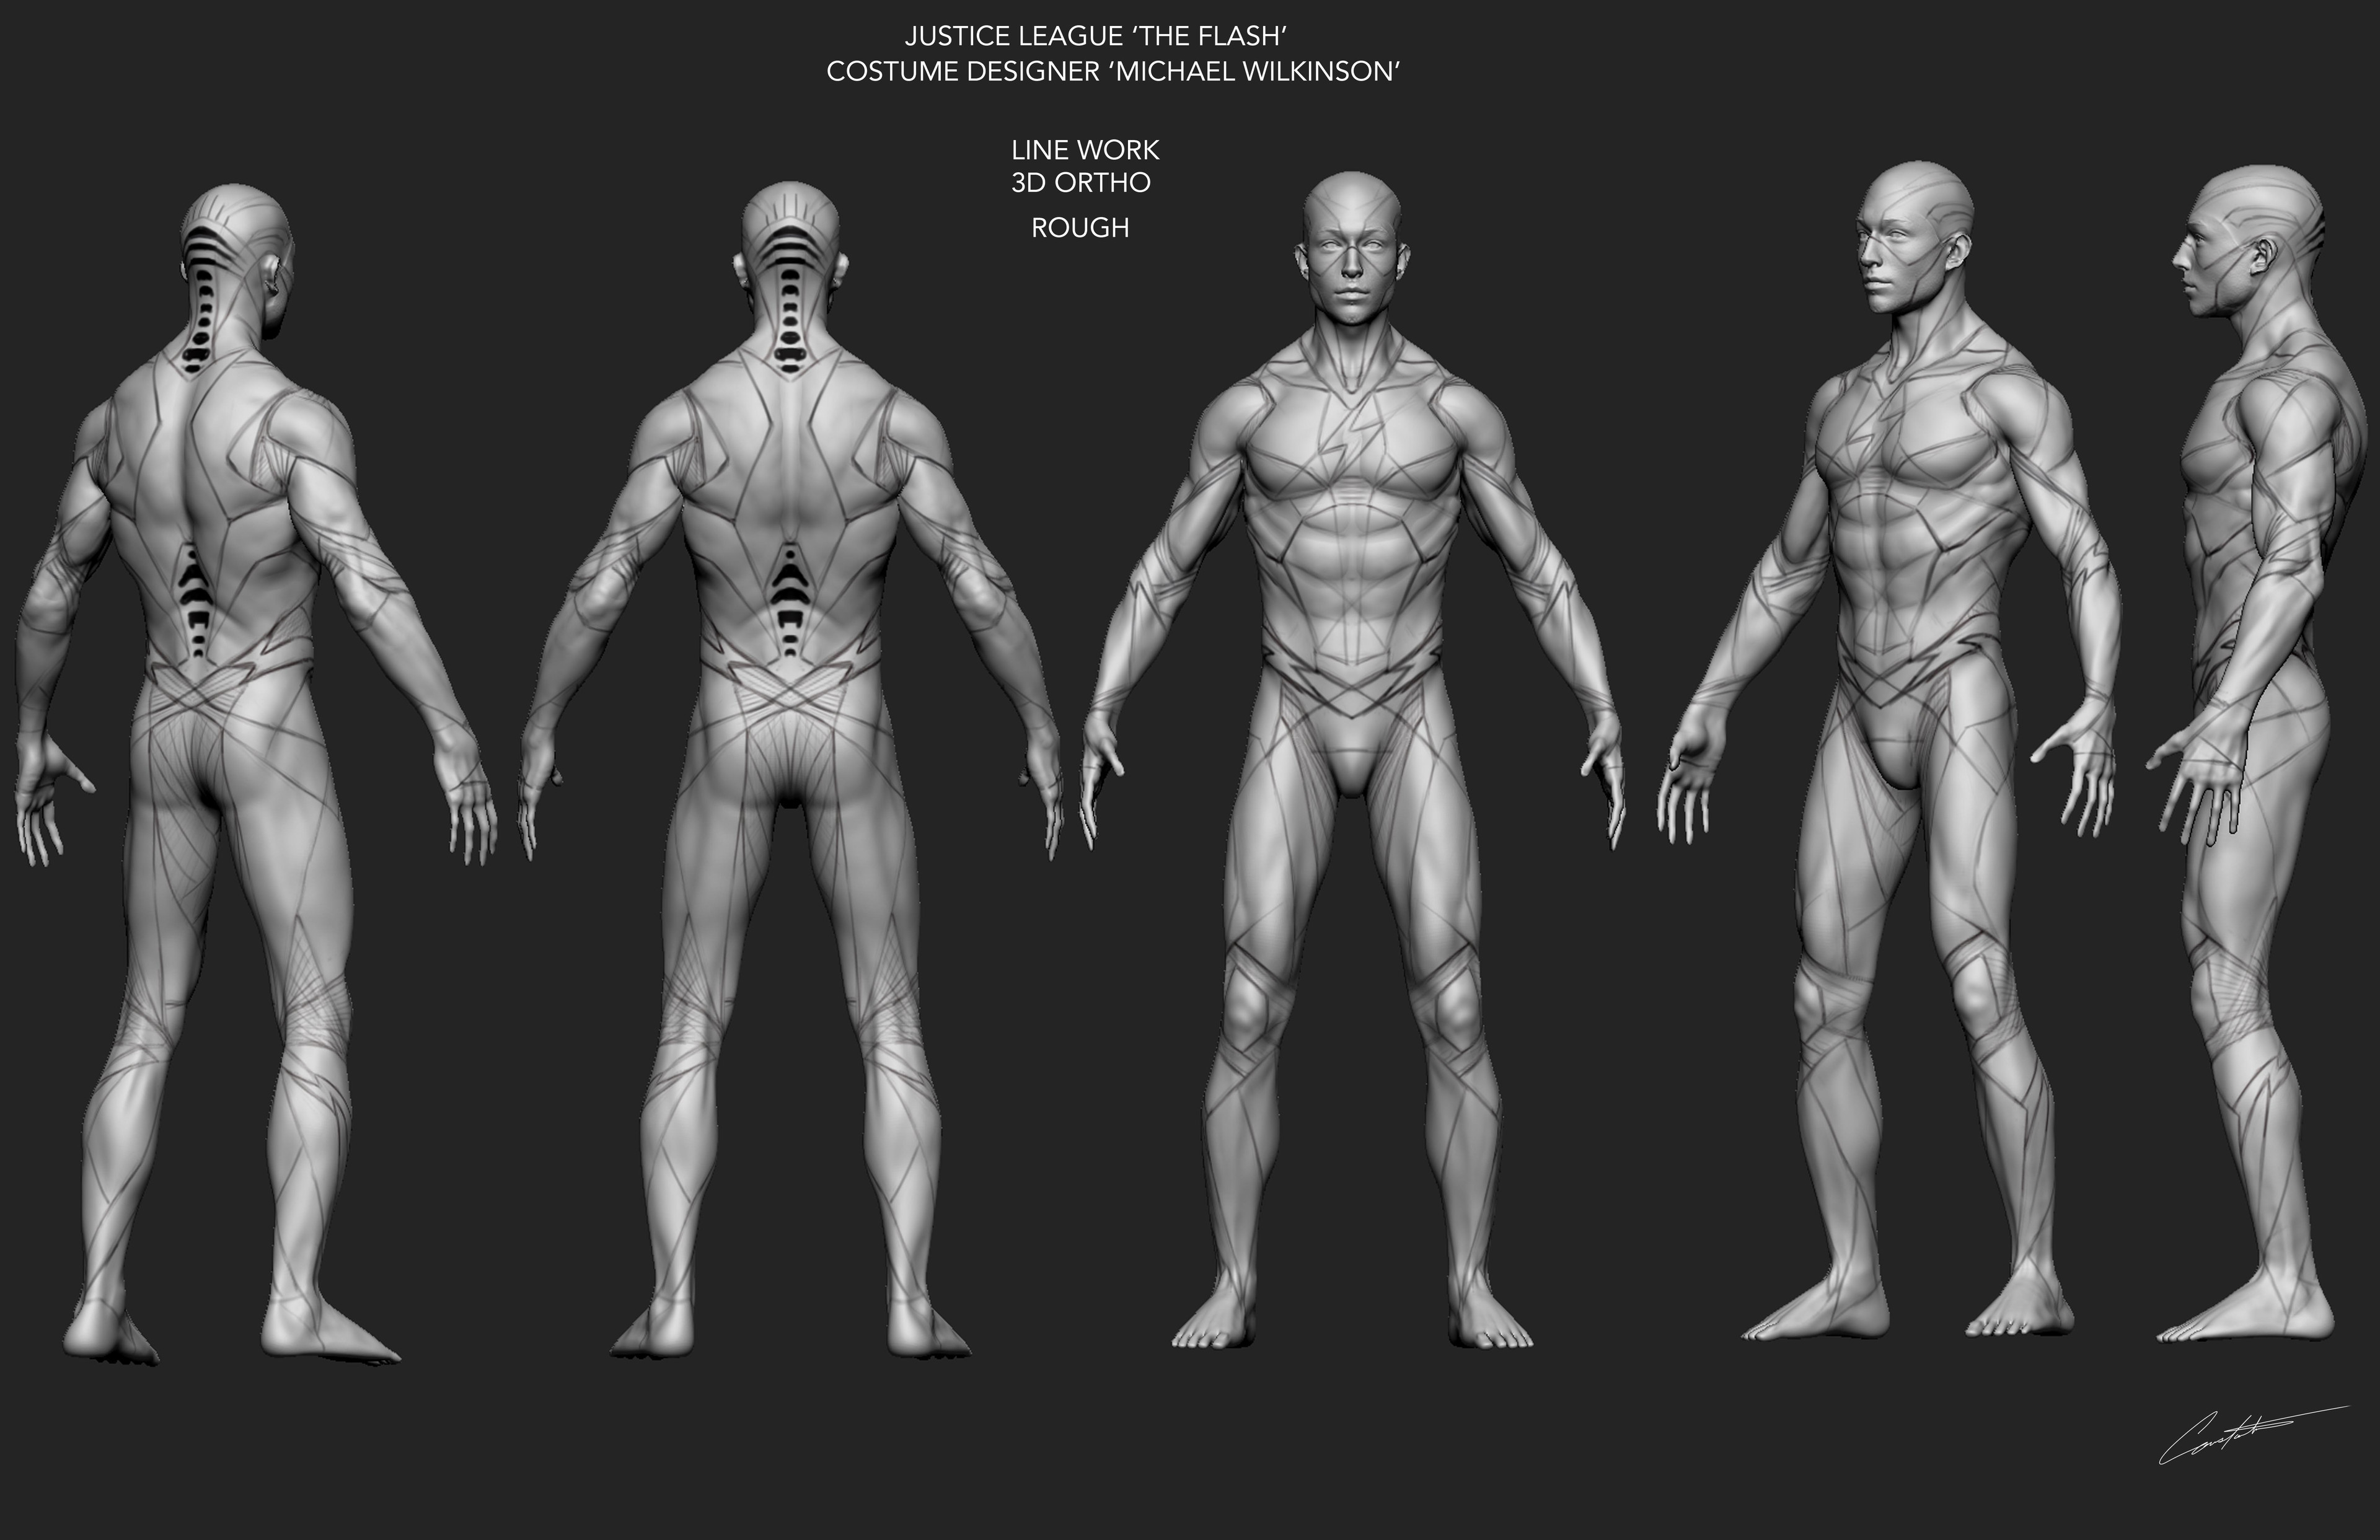 JUSTICE LEAGUE 'THE FLASH' 3D LINE WORK ROUGH ORTHO